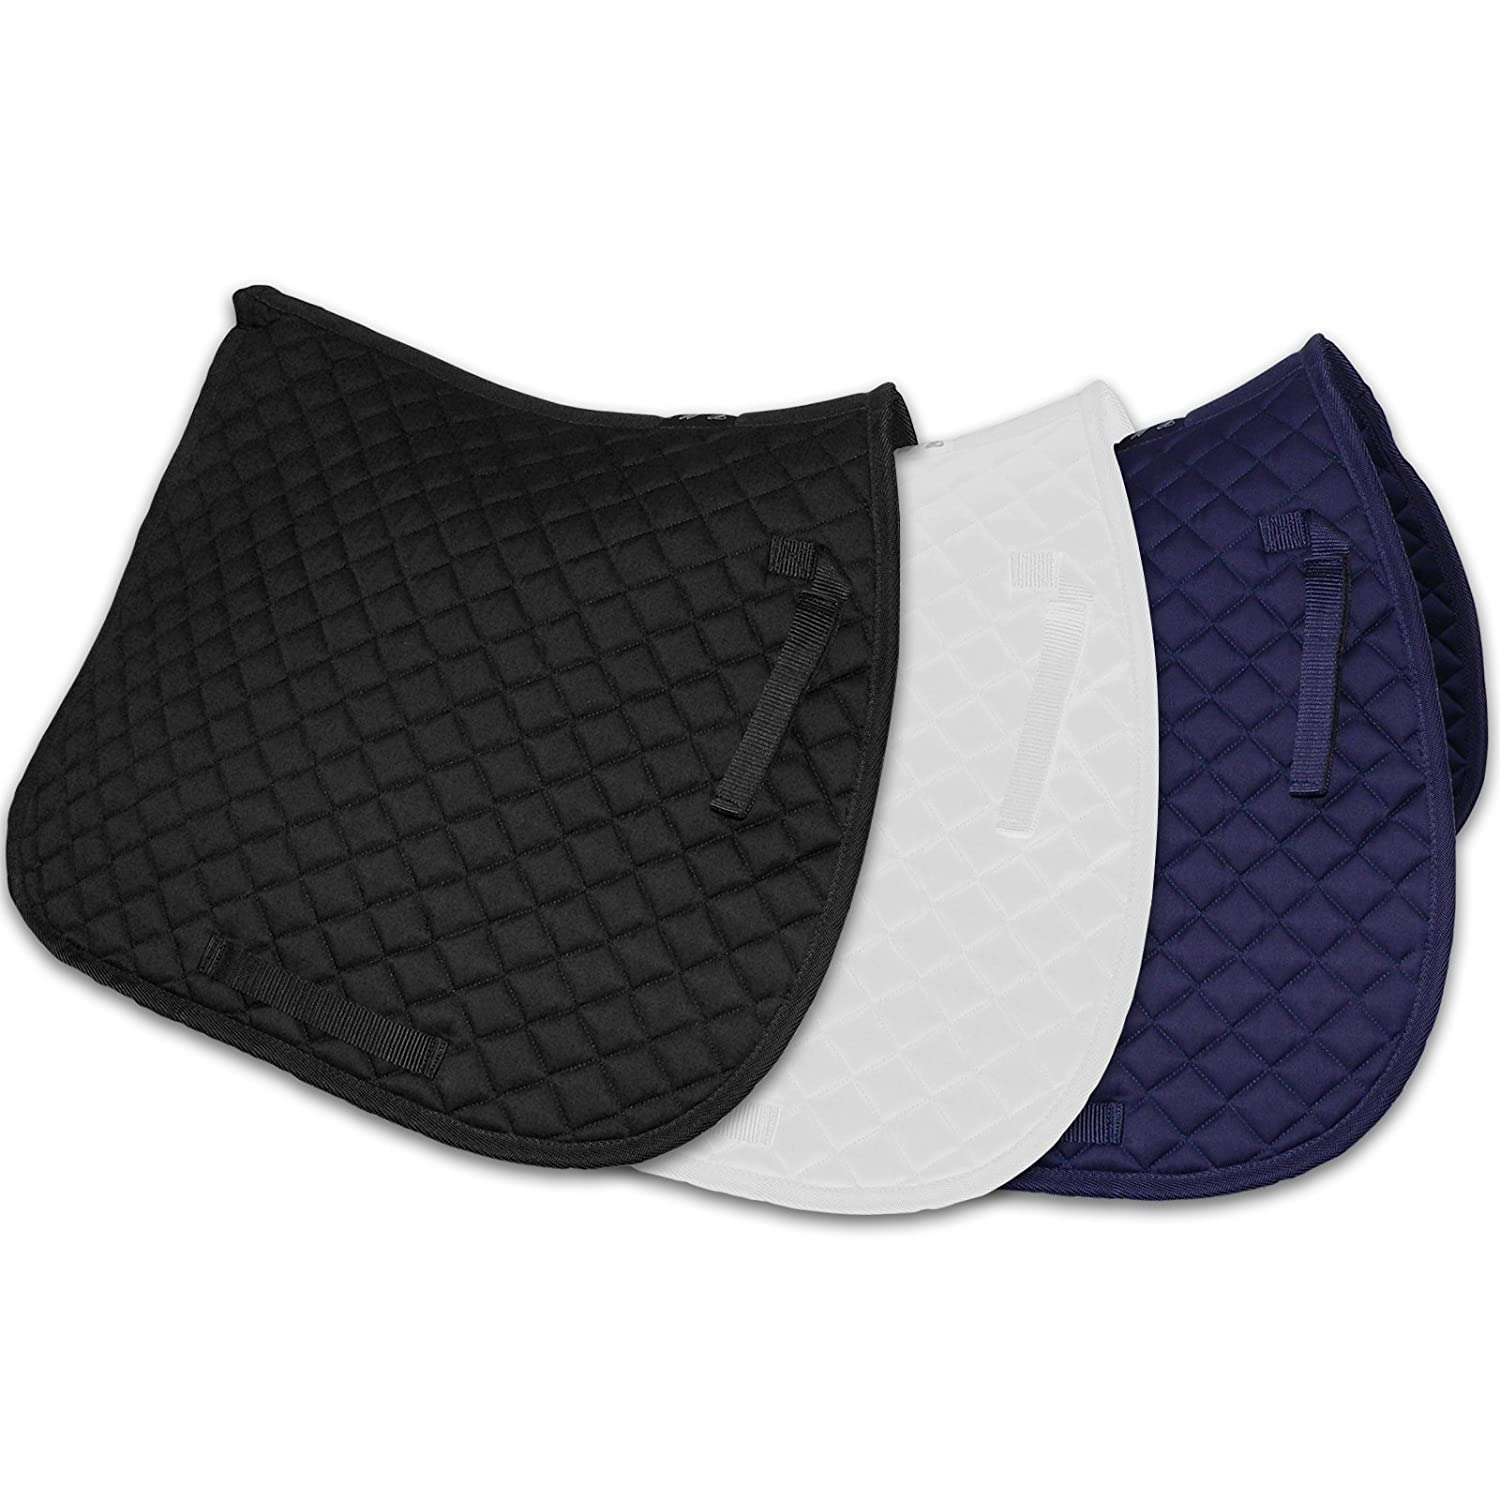 WOLSELEY essentials Saddle Pad - Sizes Pony & Full with Soft Durable Diamond Quilting AND Tigerbox® Antibacterial Pen!